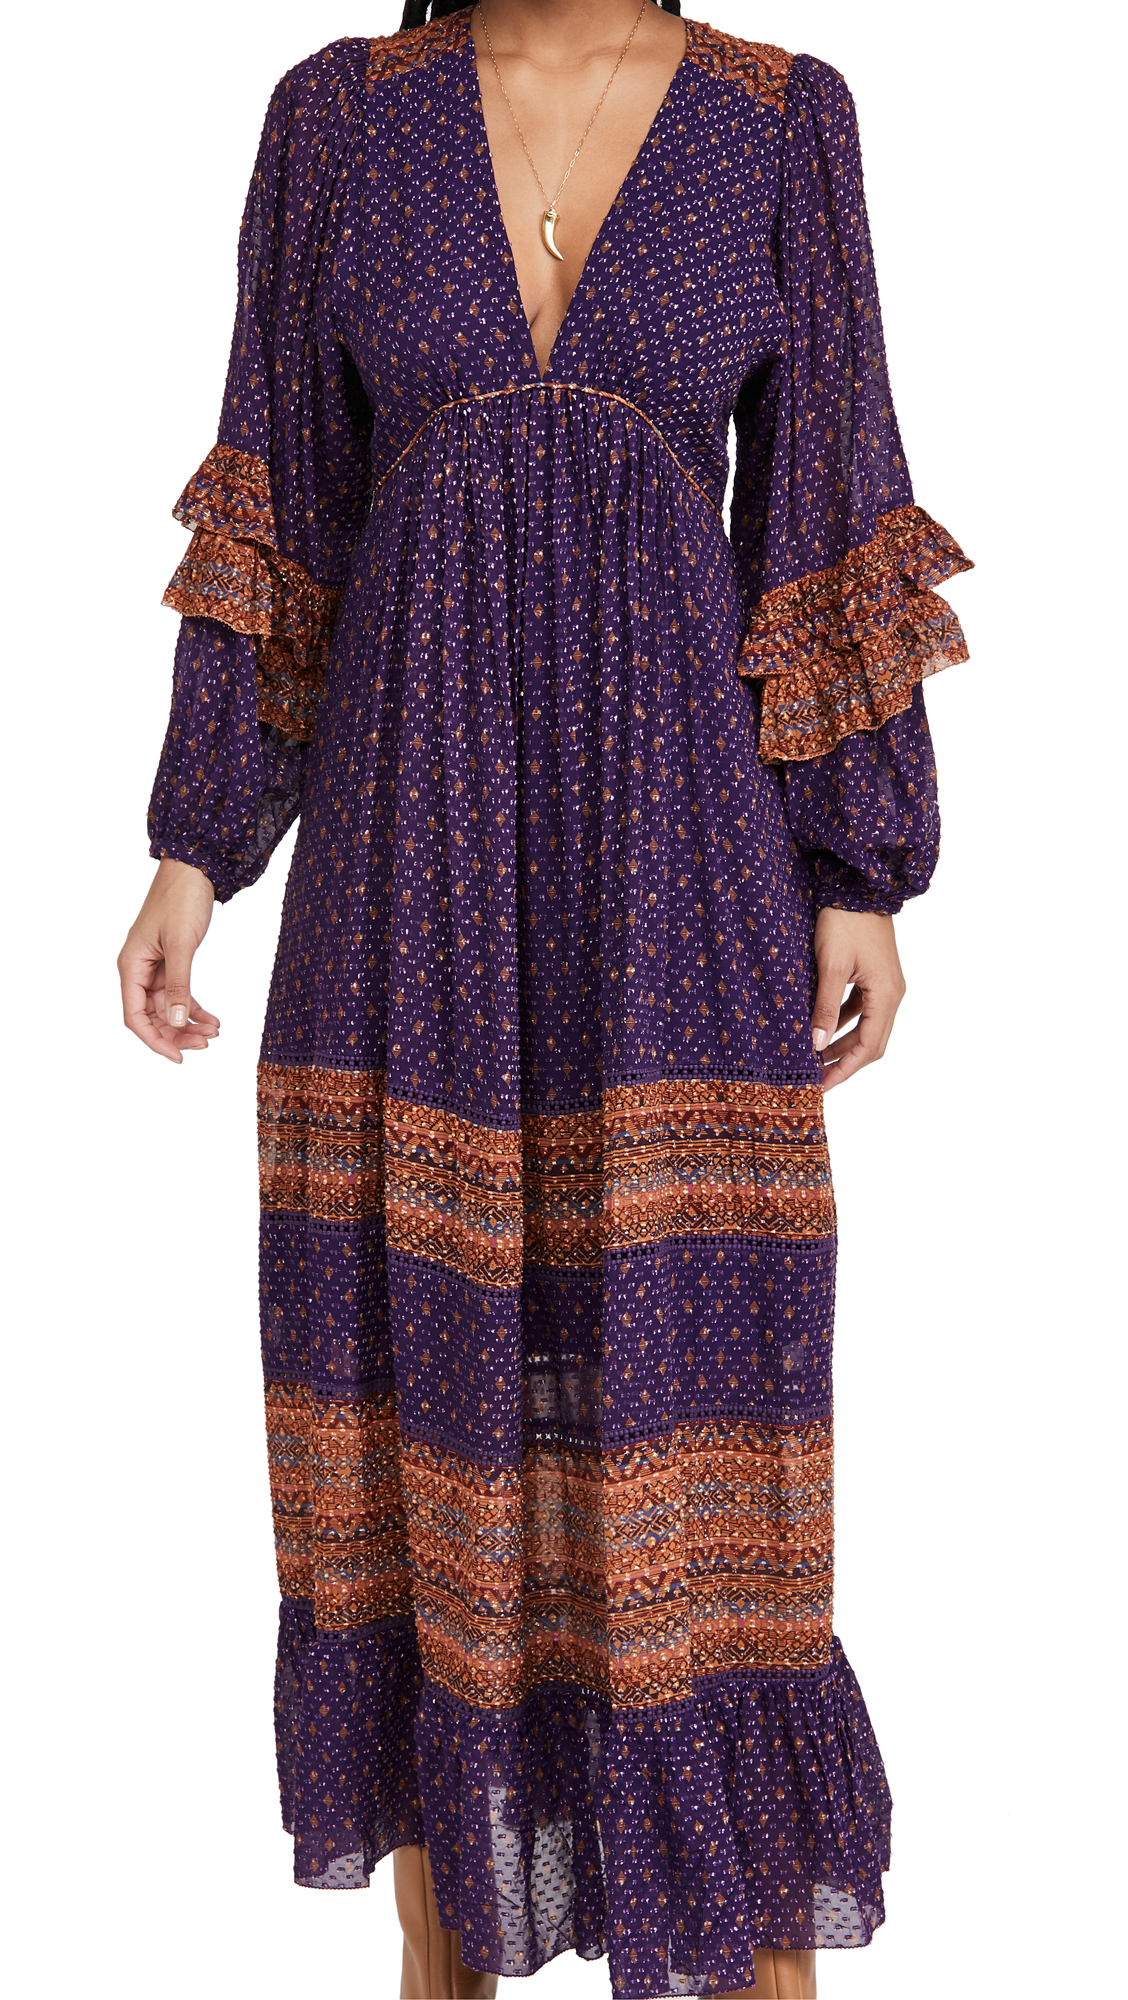 FARM Rio Sophie Scarf Maxi Dress